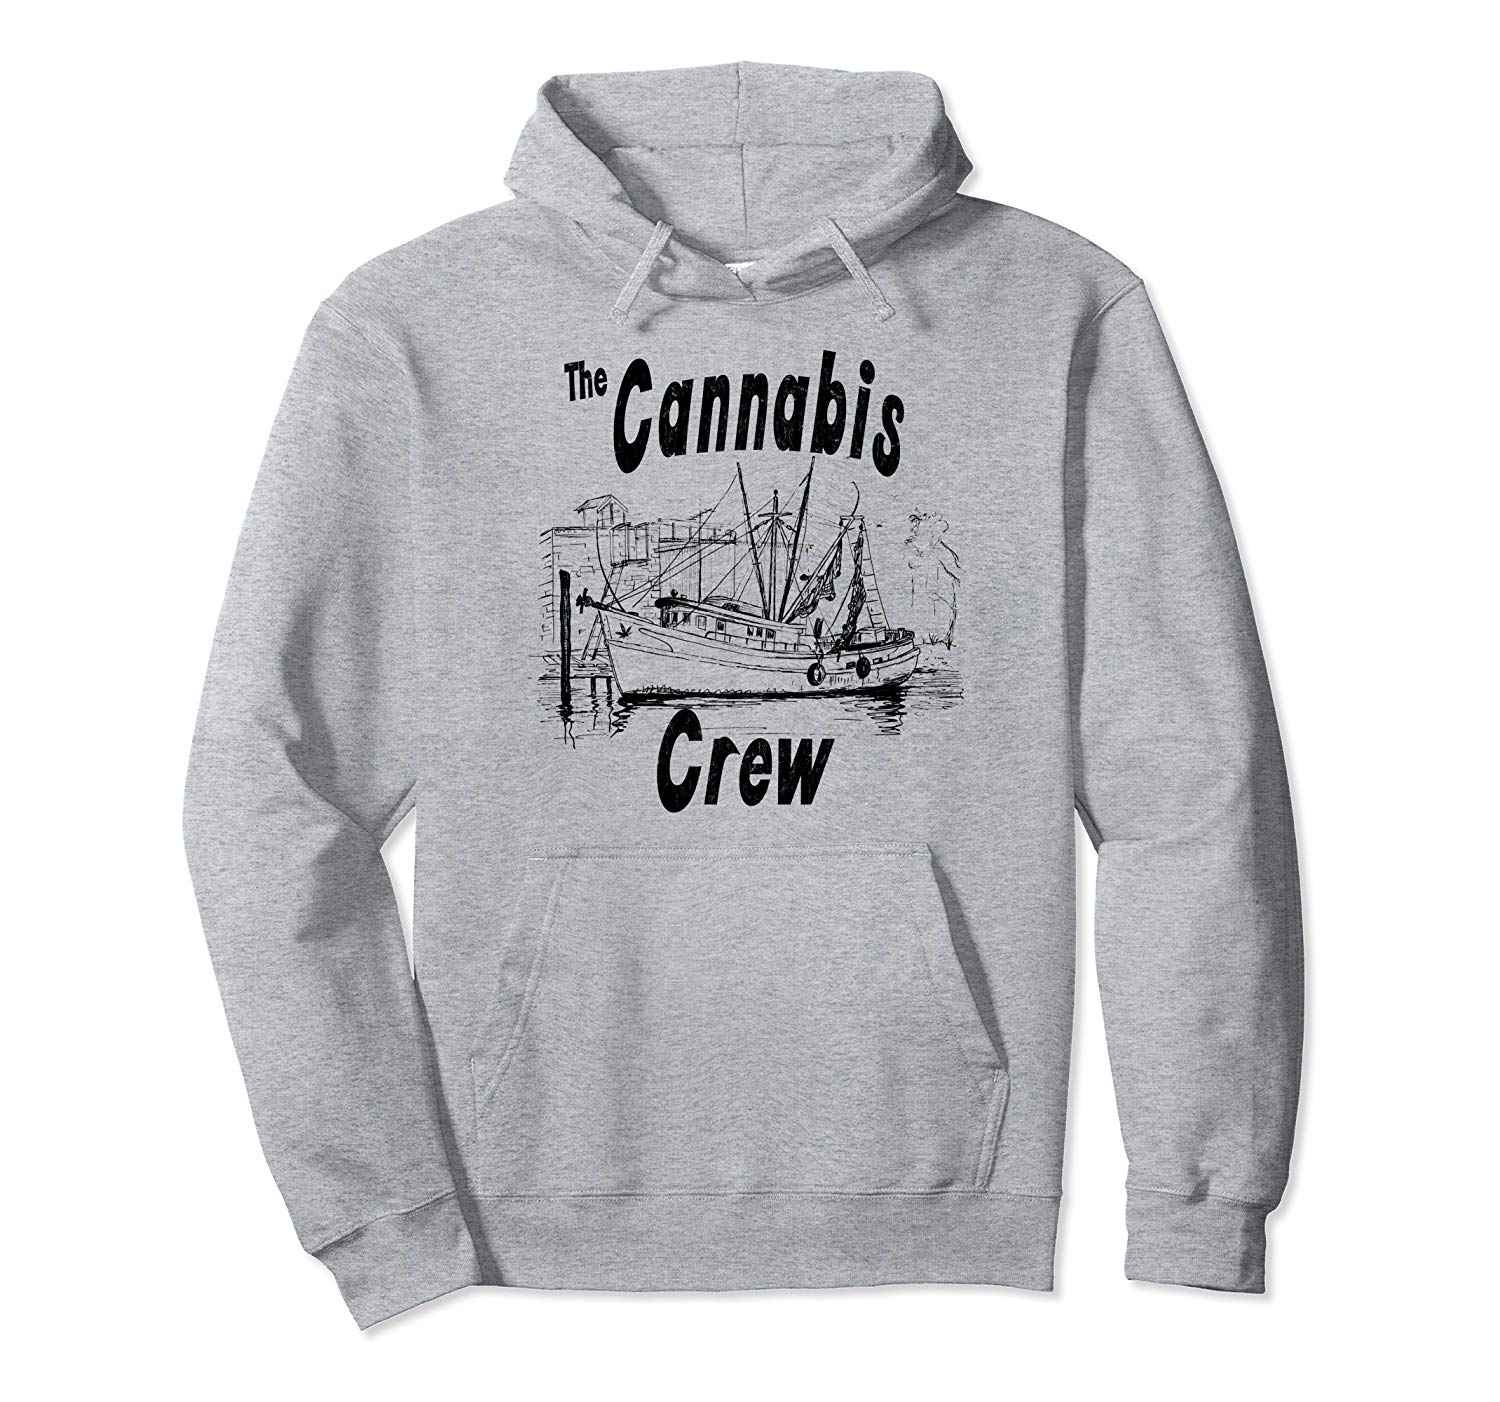 An inage of a heather grey Cannabis Crew Hoodie from Ganja Outpost